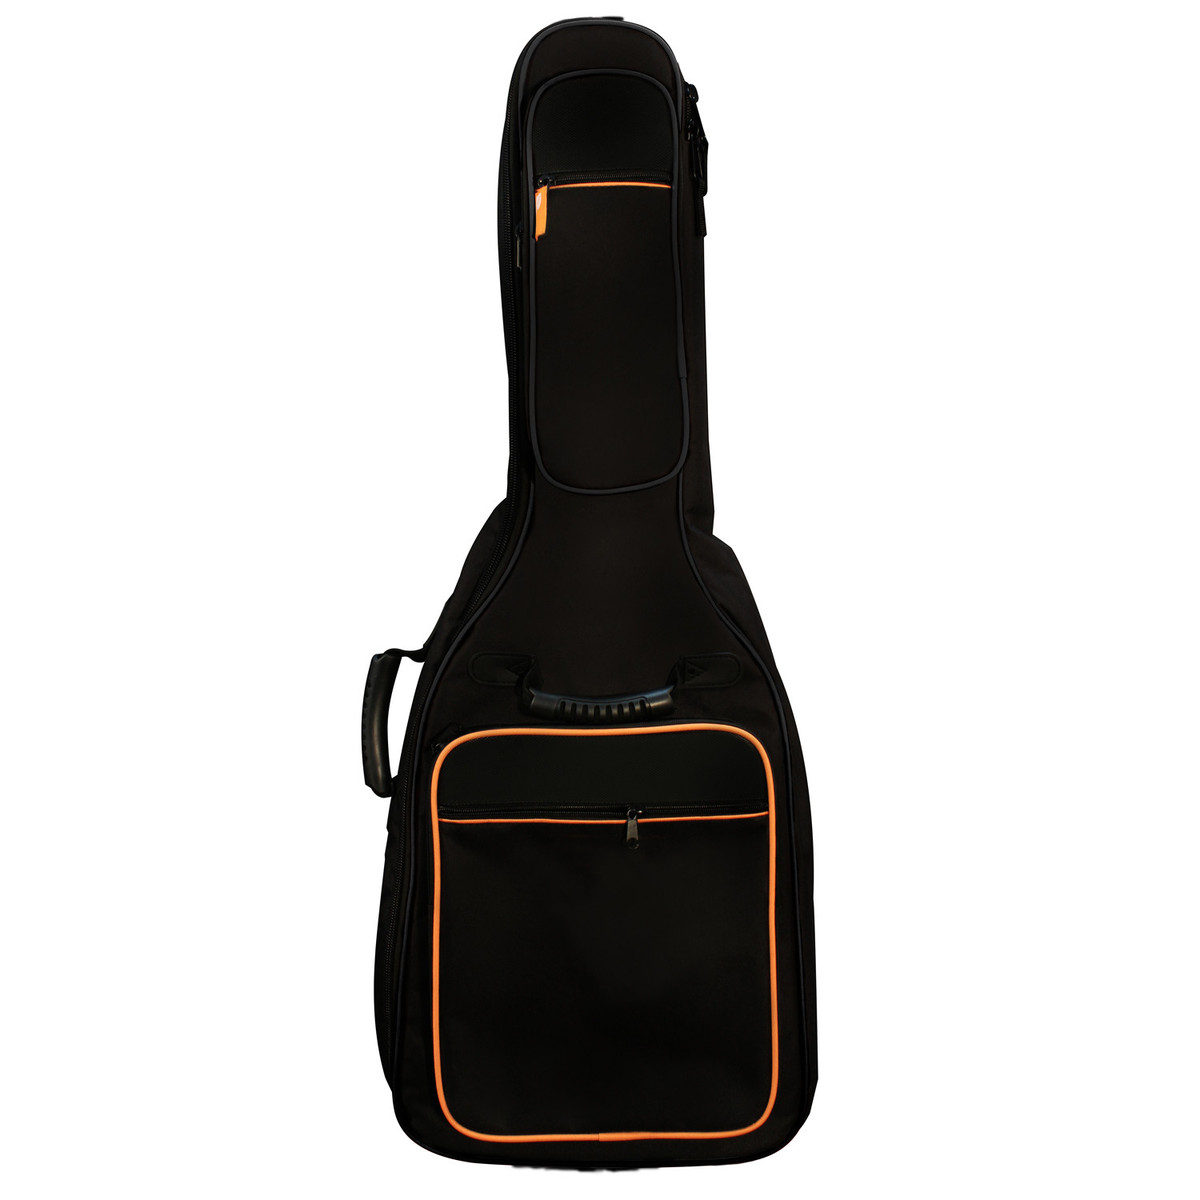 Image of Ashton ARM1500 Bass Guitar Bag